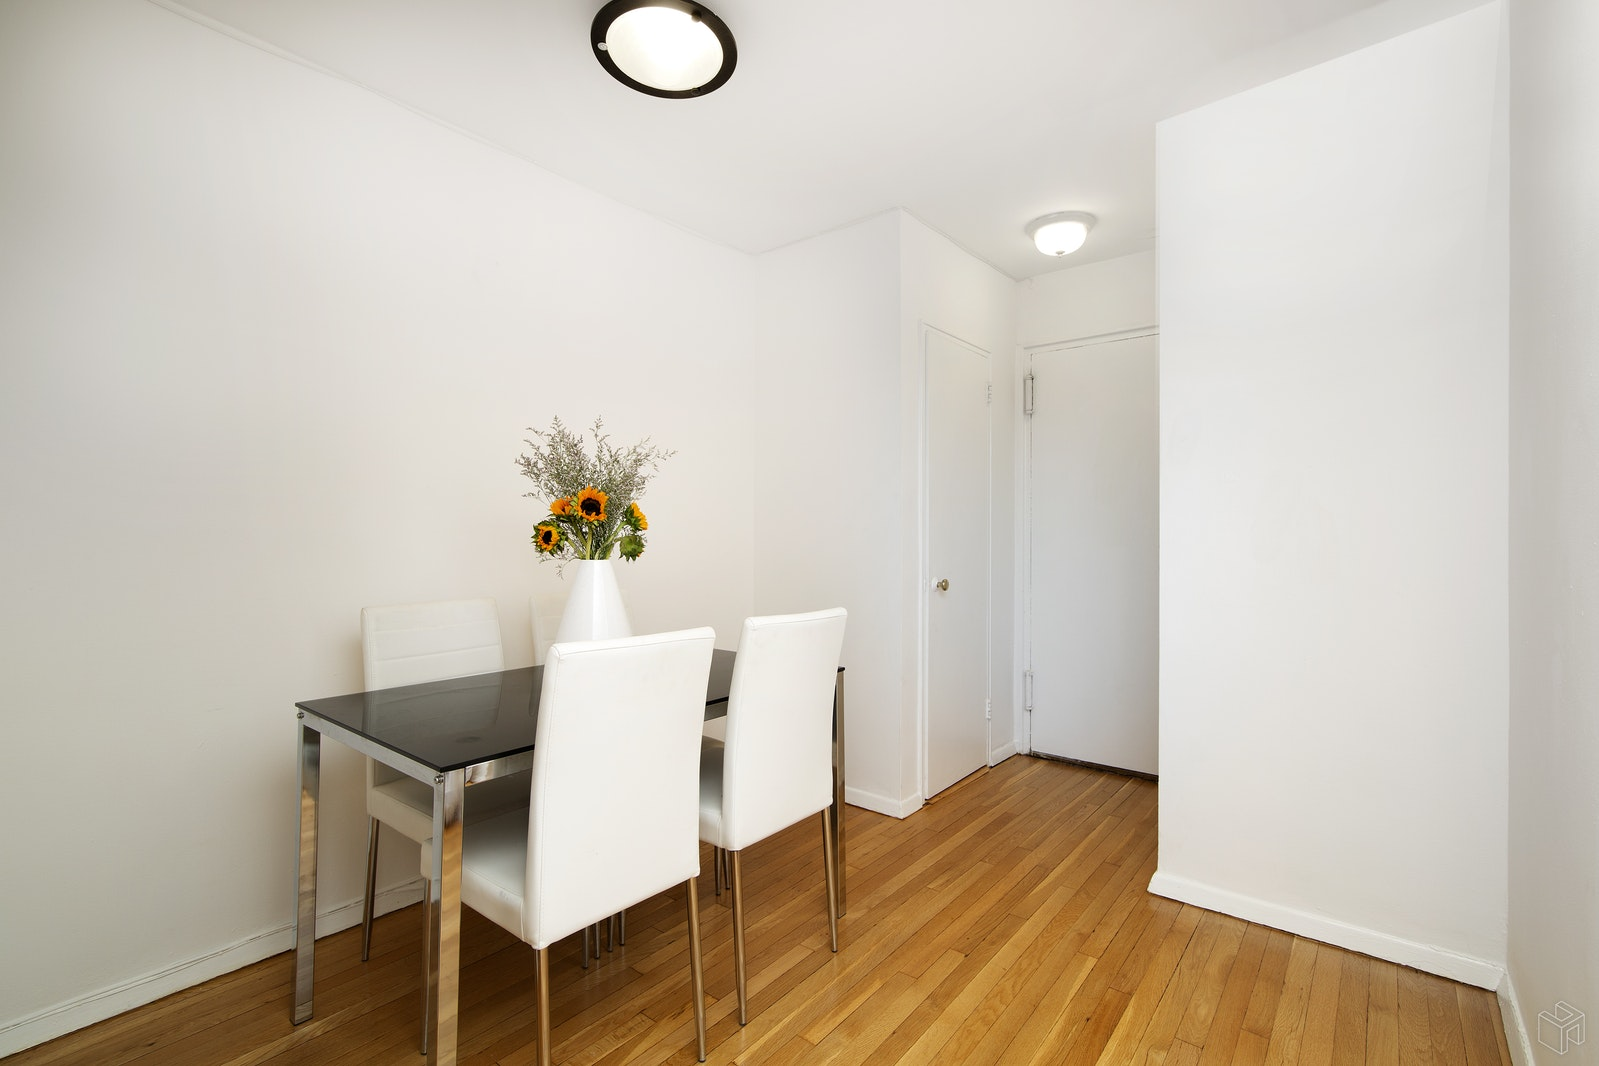 30 East 9th Street 3gg, Greenwich Village, NYC, 10003, $442,500, Sold Property, Halstead Real Estate, Photo 3